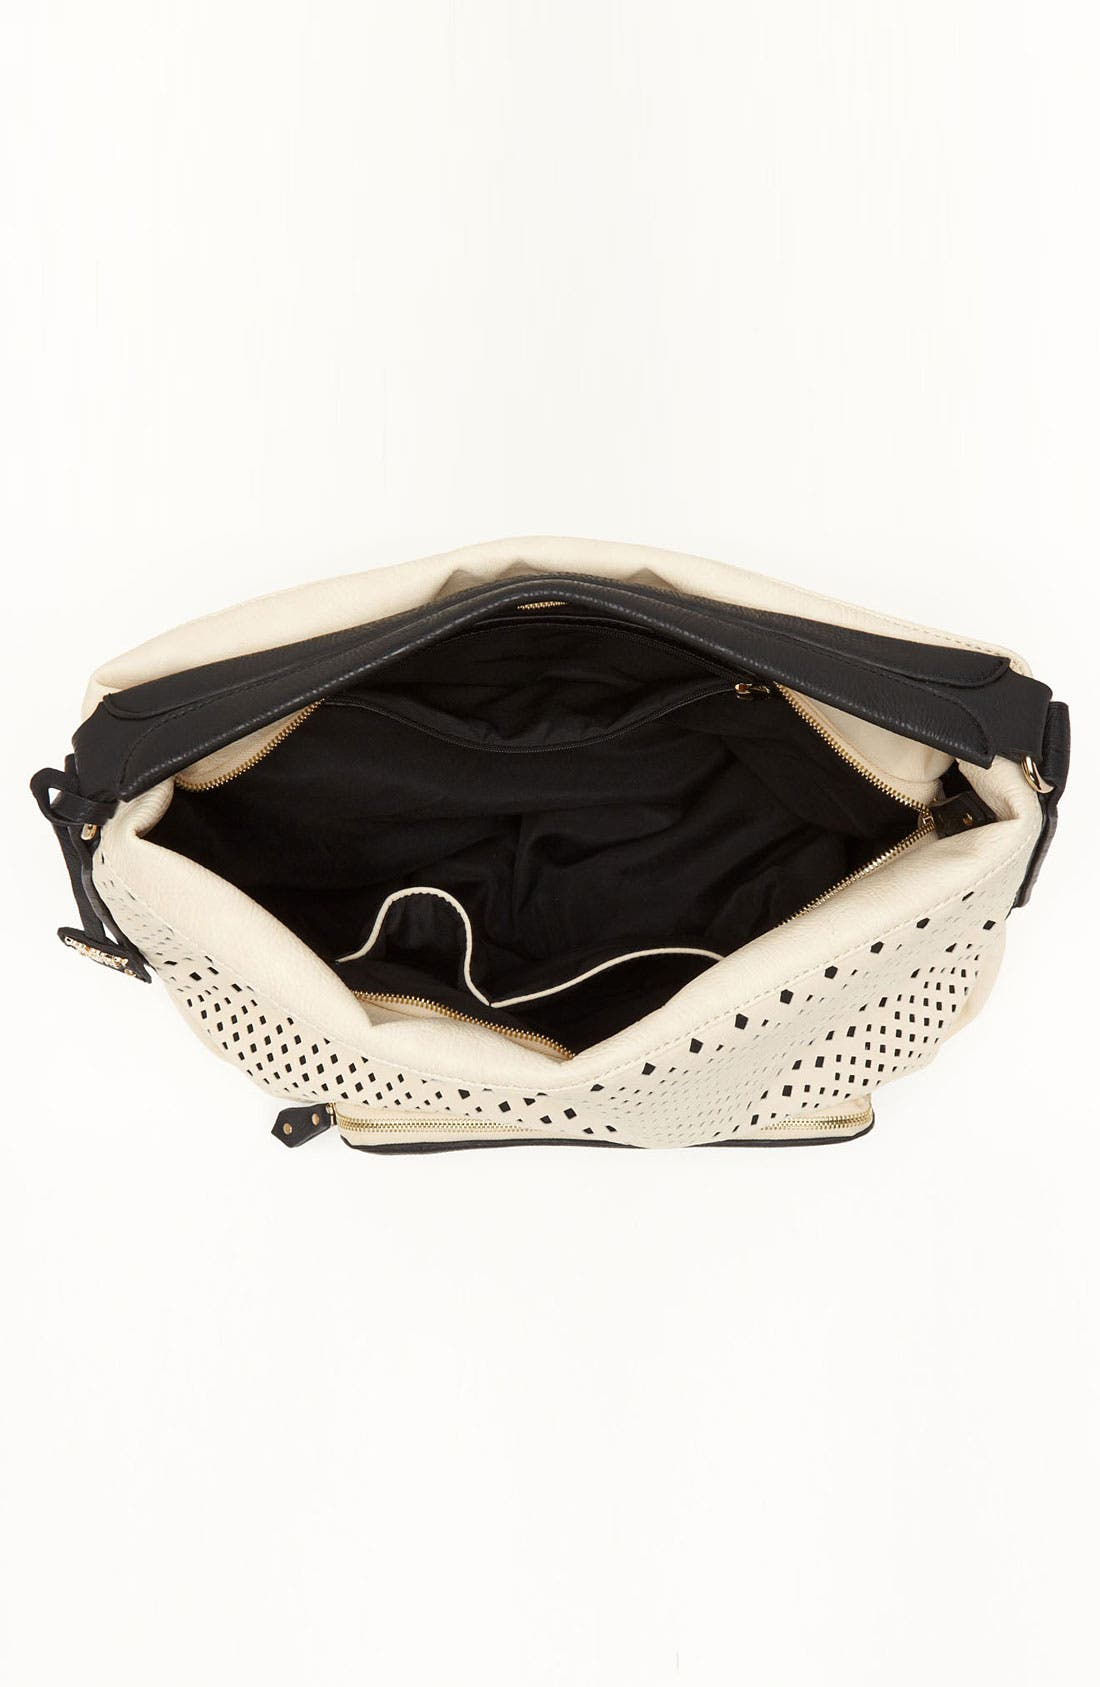 POVERTY FLATS BY RIAN, Perforated Faux Leather Shoulder Bag, Alternate thumbnail 3, color, 001